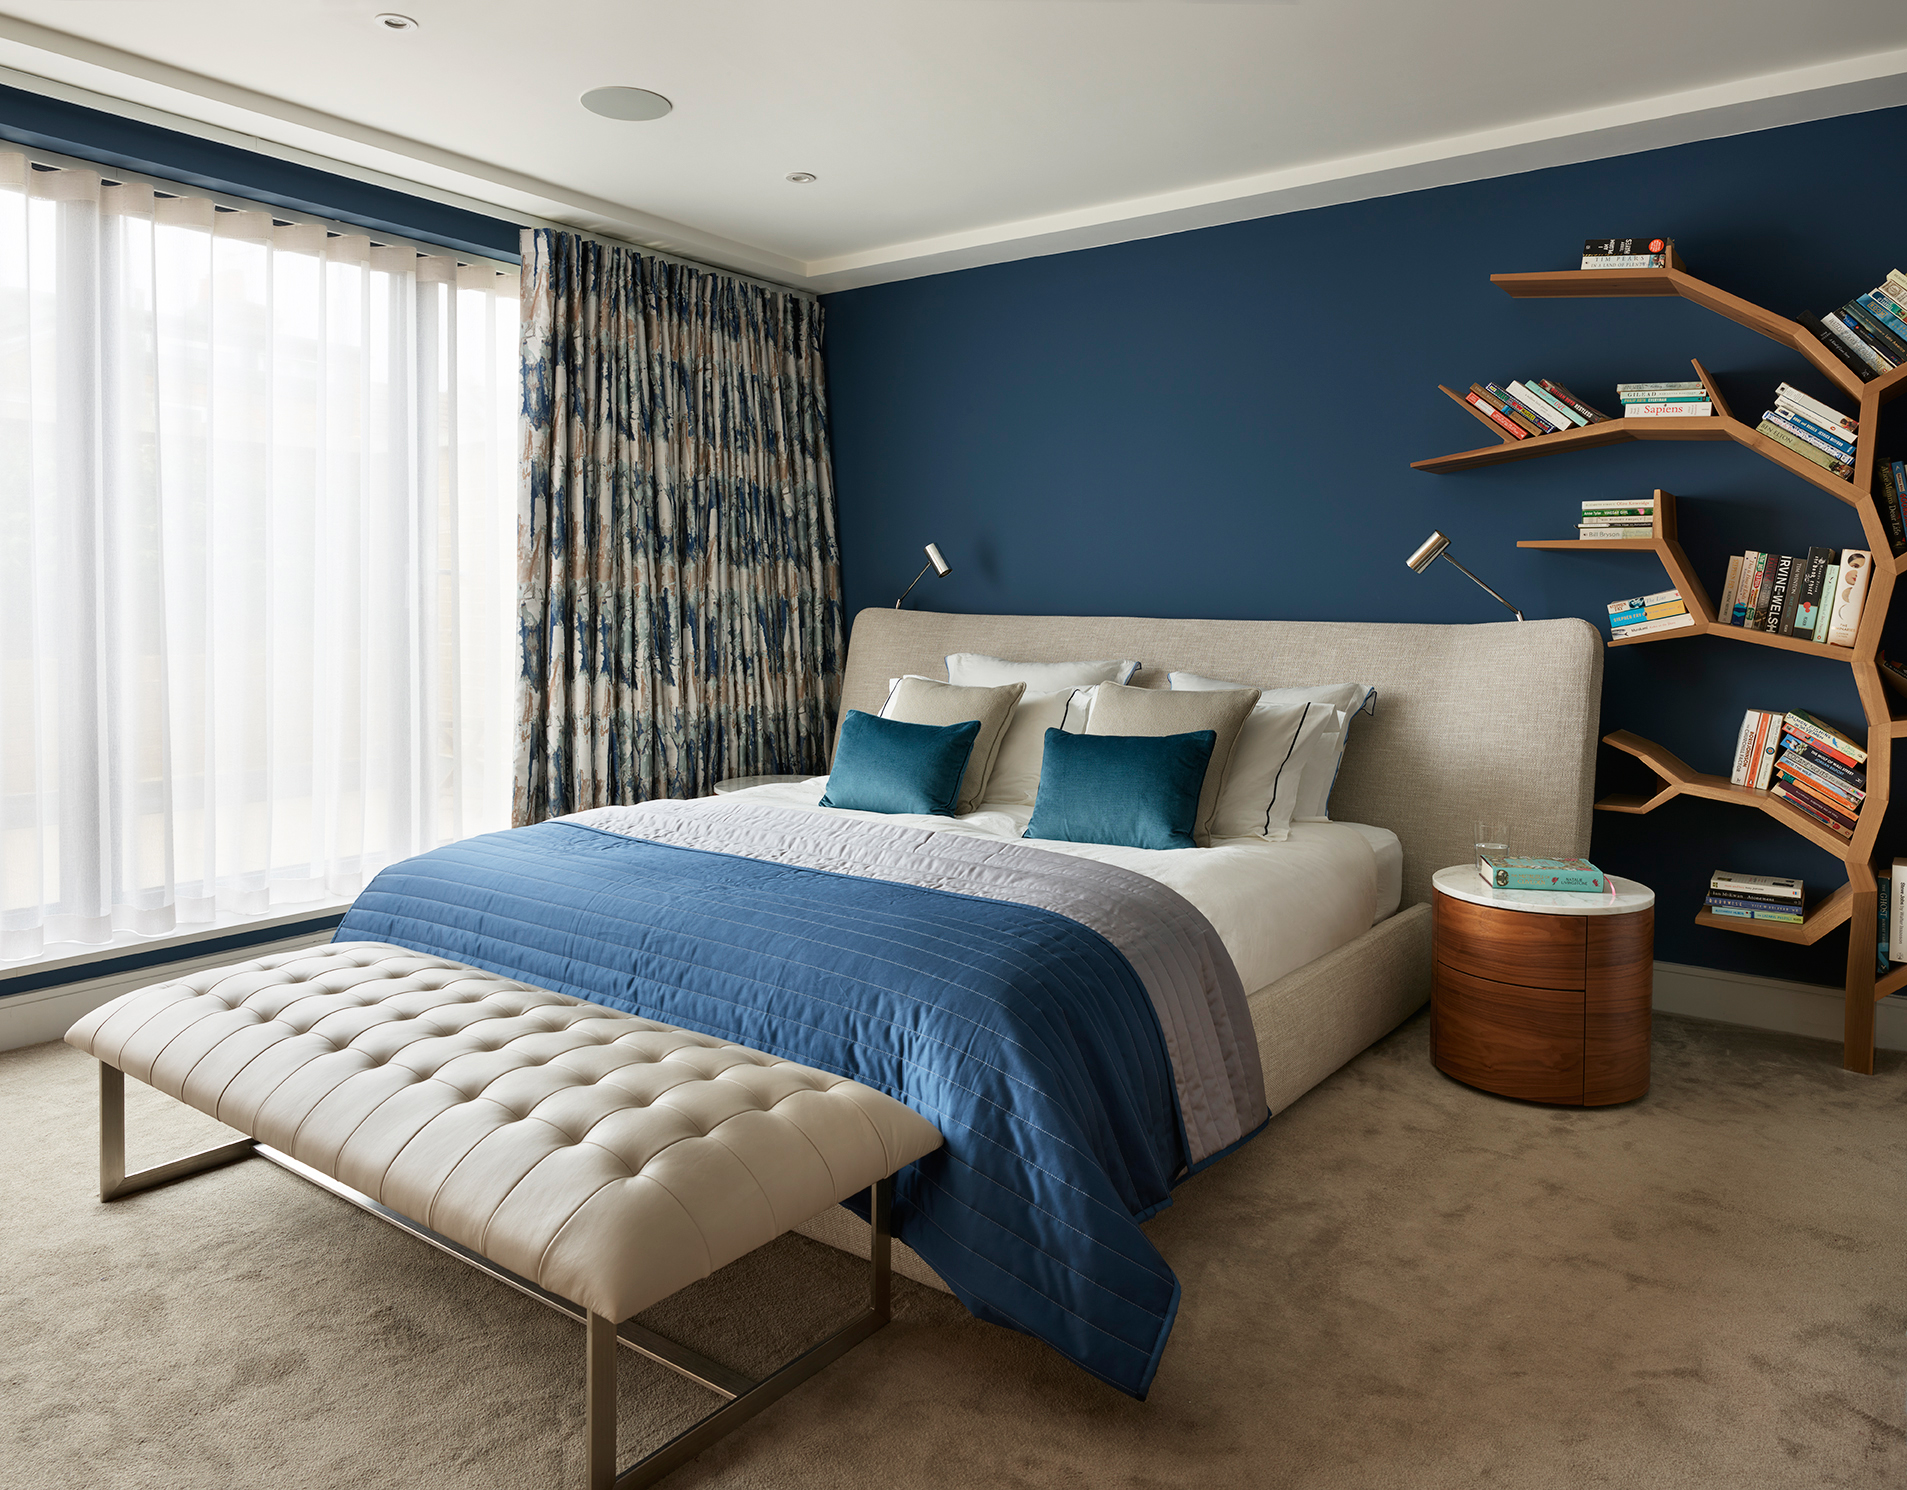 Bedroom Designs Latest 2018 Interior Design Trends 2018 Top Tips From The Experts